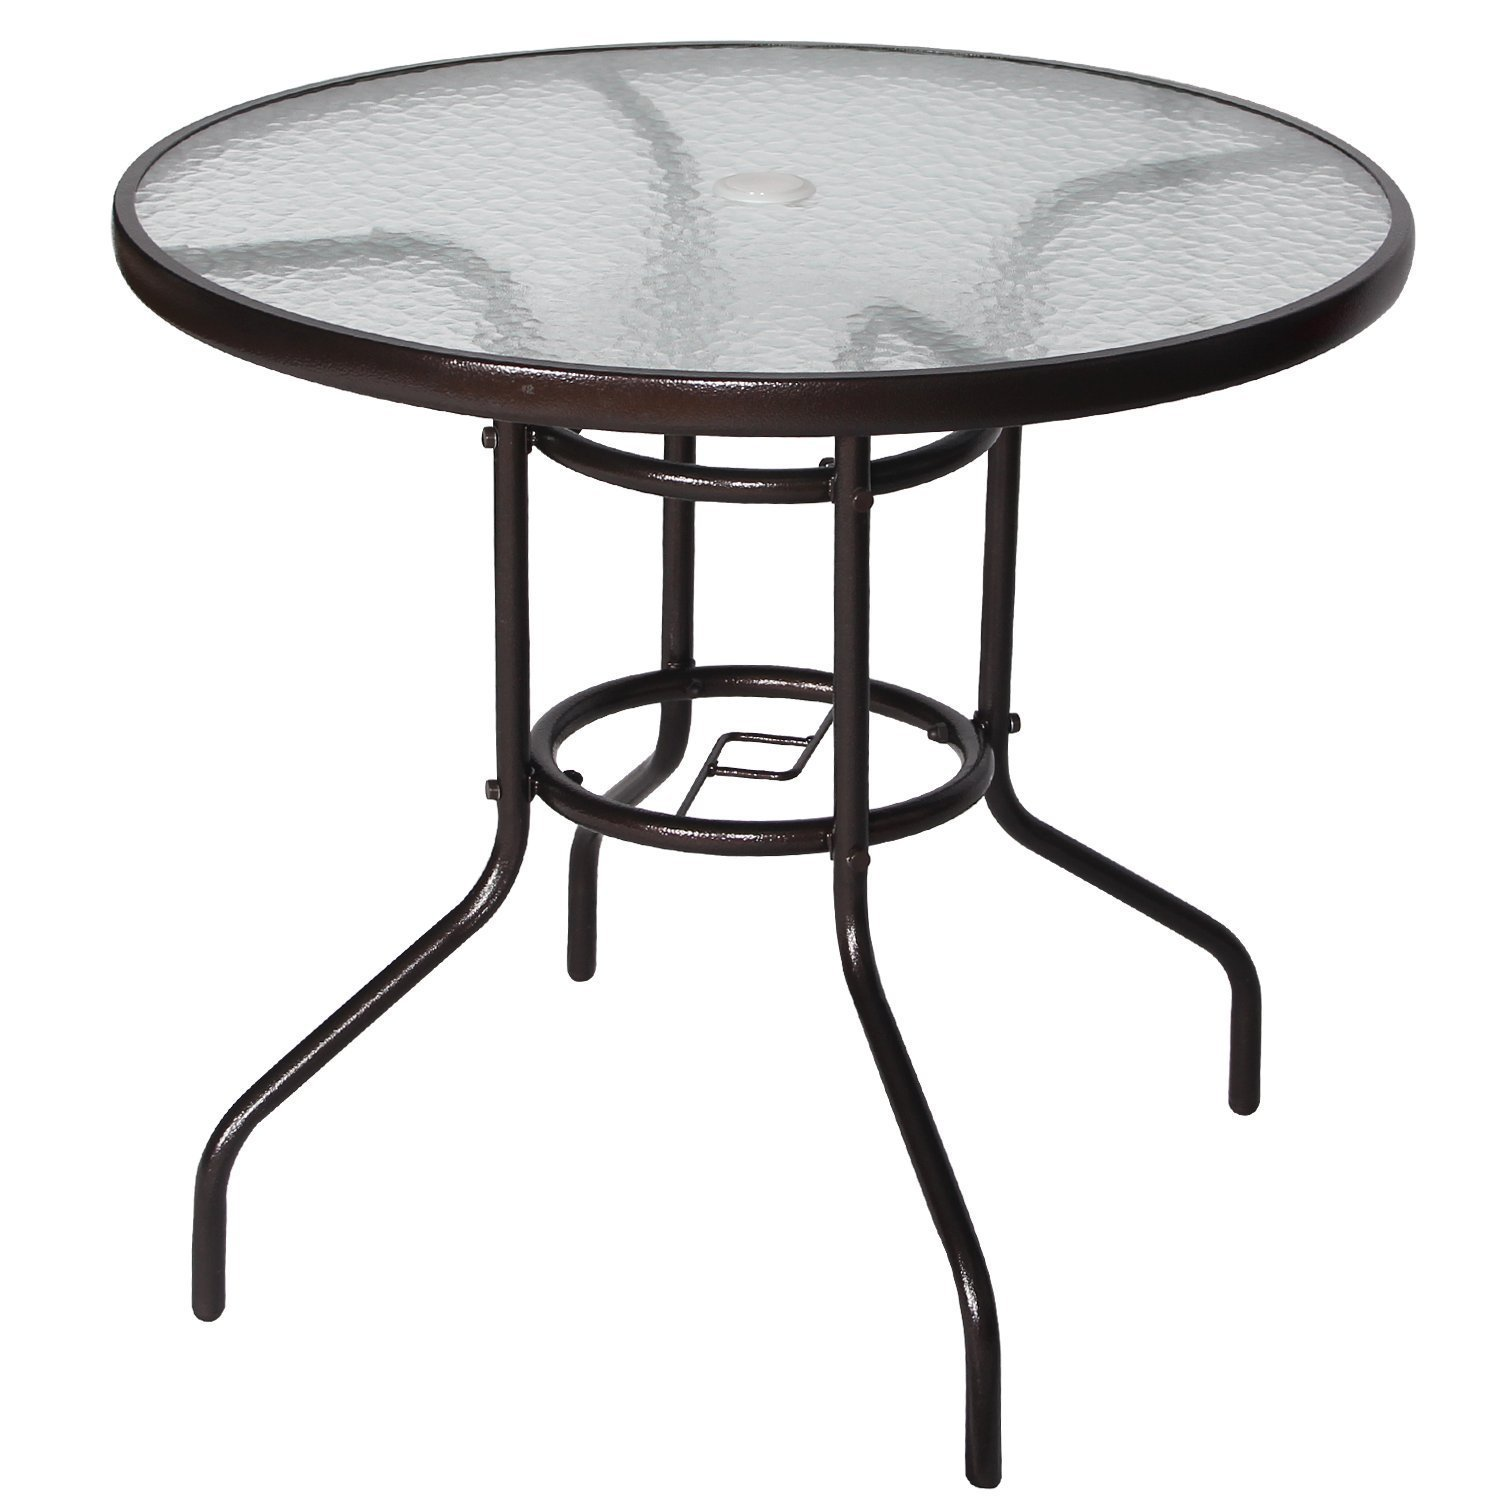 Best Outdoor Table Our Top 10 Favorites To Buy From Amazon